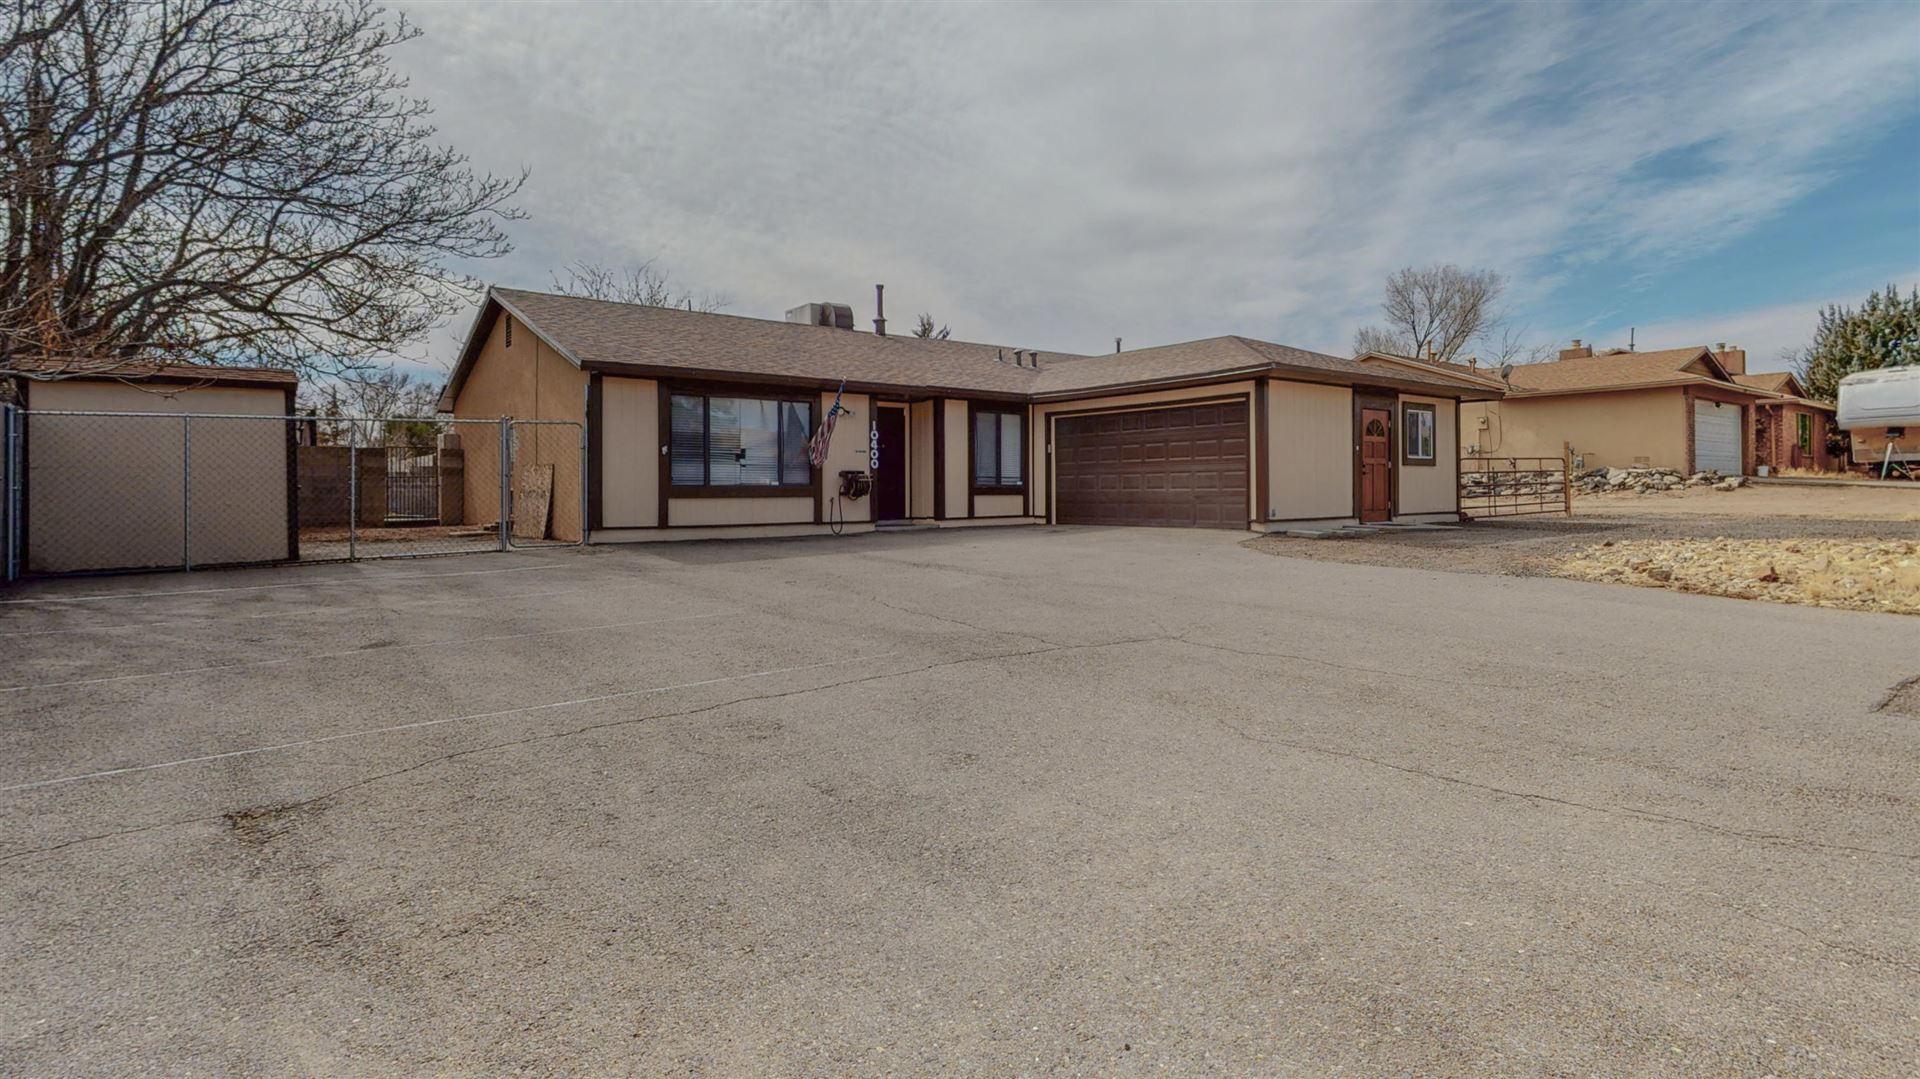 10400 TREVINO Loop NW, Albuquerque, NM 87114 - MLS#: 986490